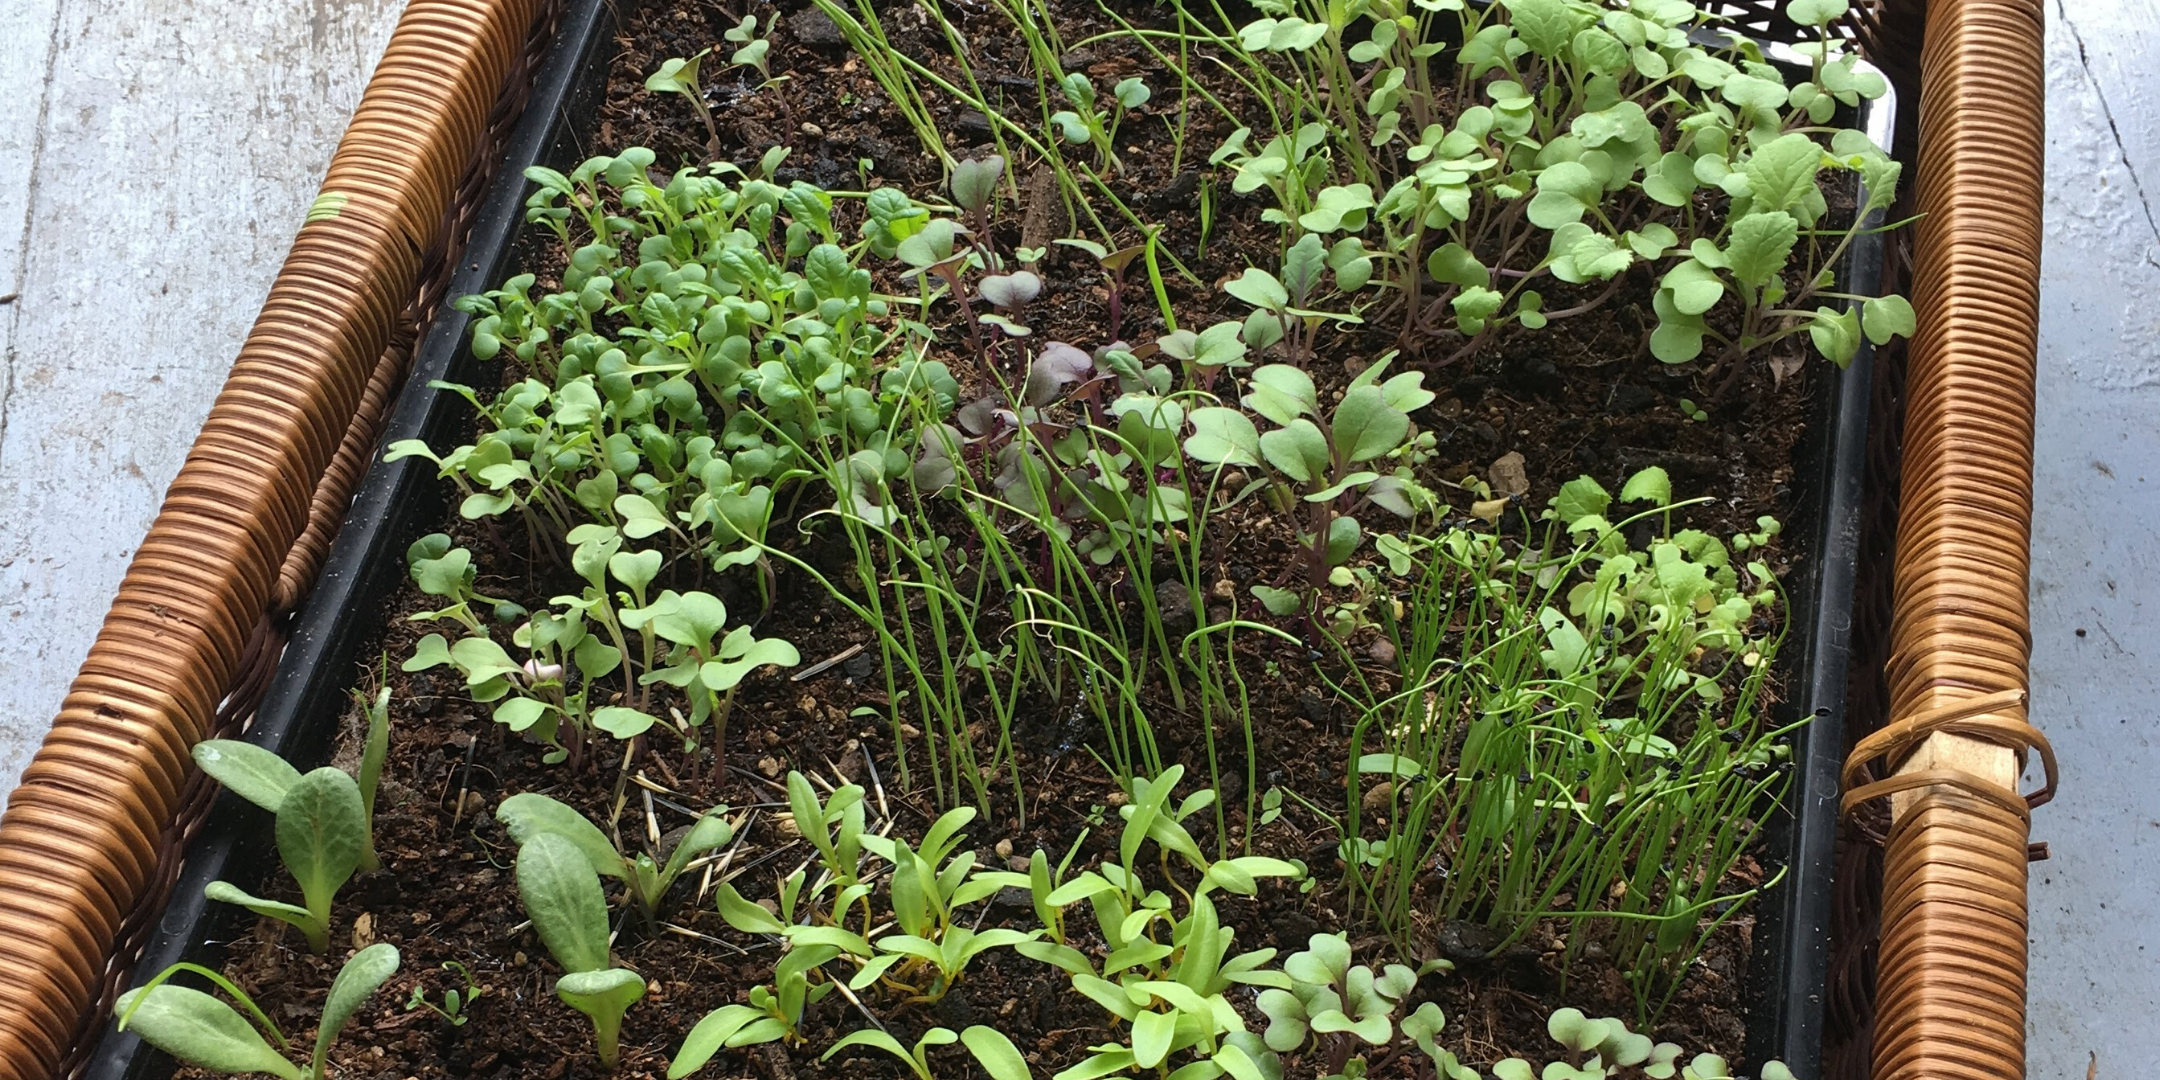 A tray of seedlings with a wide variety of plants growing.